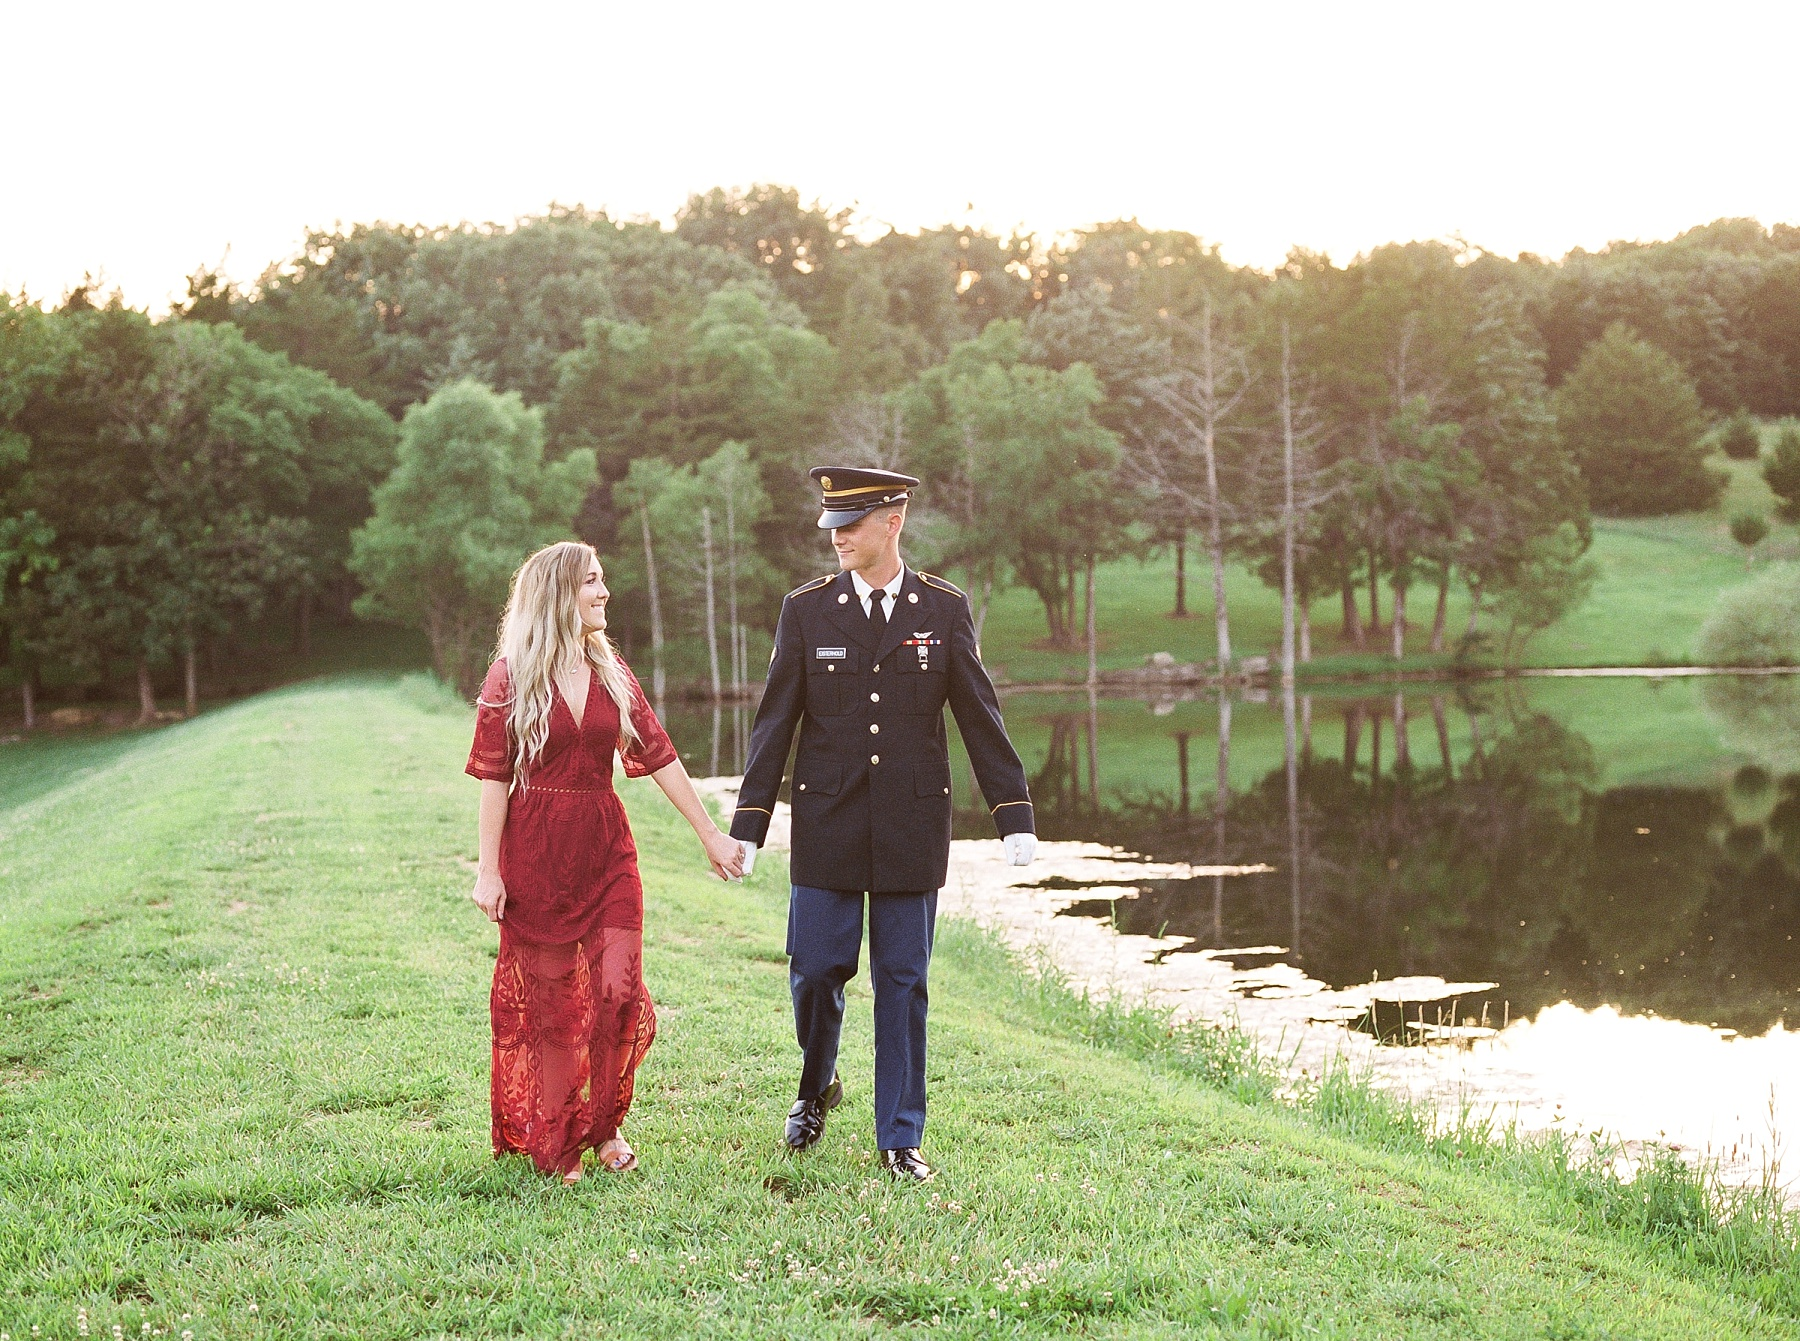 Golden Hour Summer Engagement Session at Lakeside Valley and Vineyards at Kempkers Back 40 by Kelsi Kliethermes Photography Best Missouri and Maui Wedding Photographer_0002.jpg